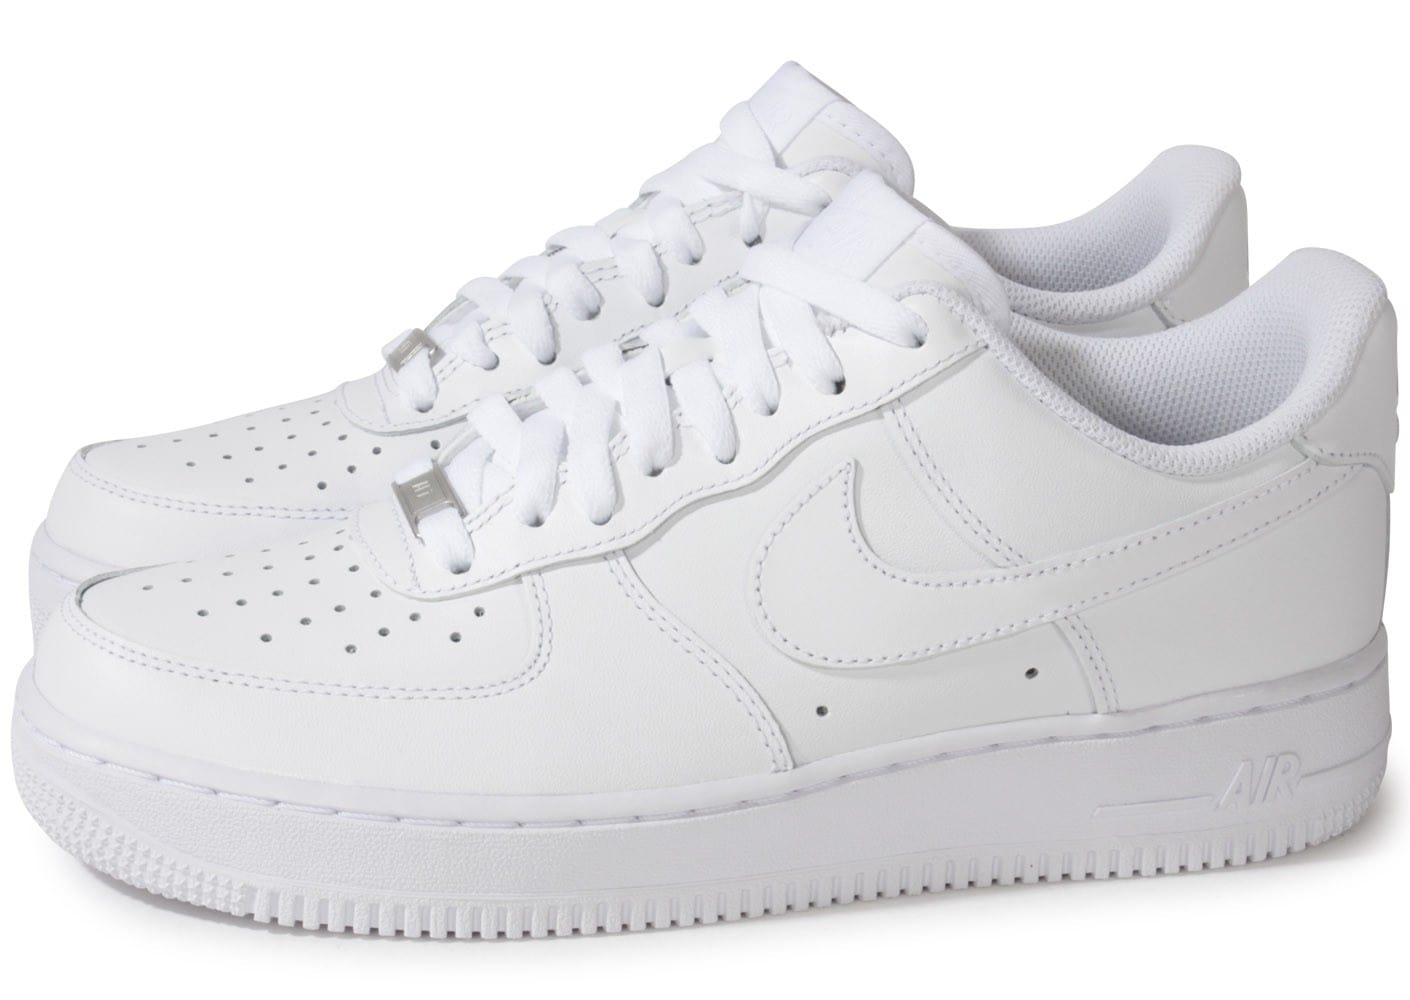 design intemporel f3a65 19e6e Importation de nike Air Force 1 Blanche Femme,Air Force One ...